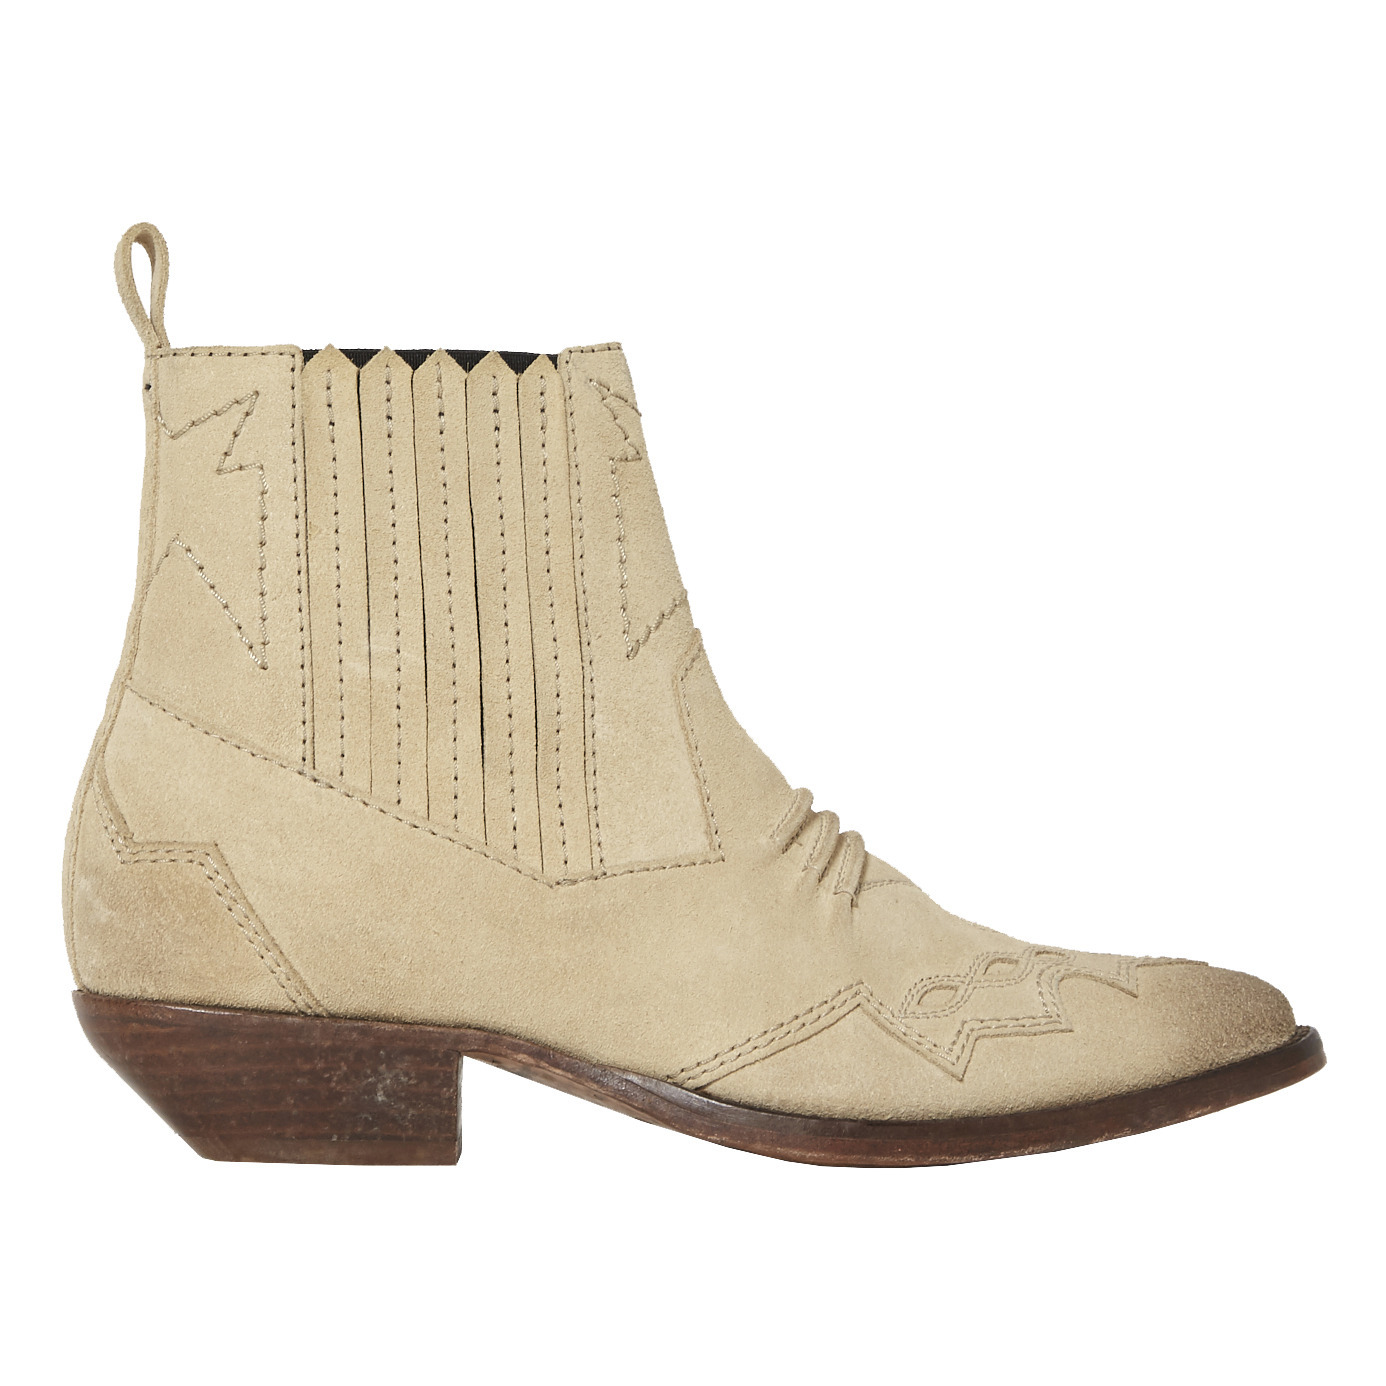 Boots Tucson Cuir Suede